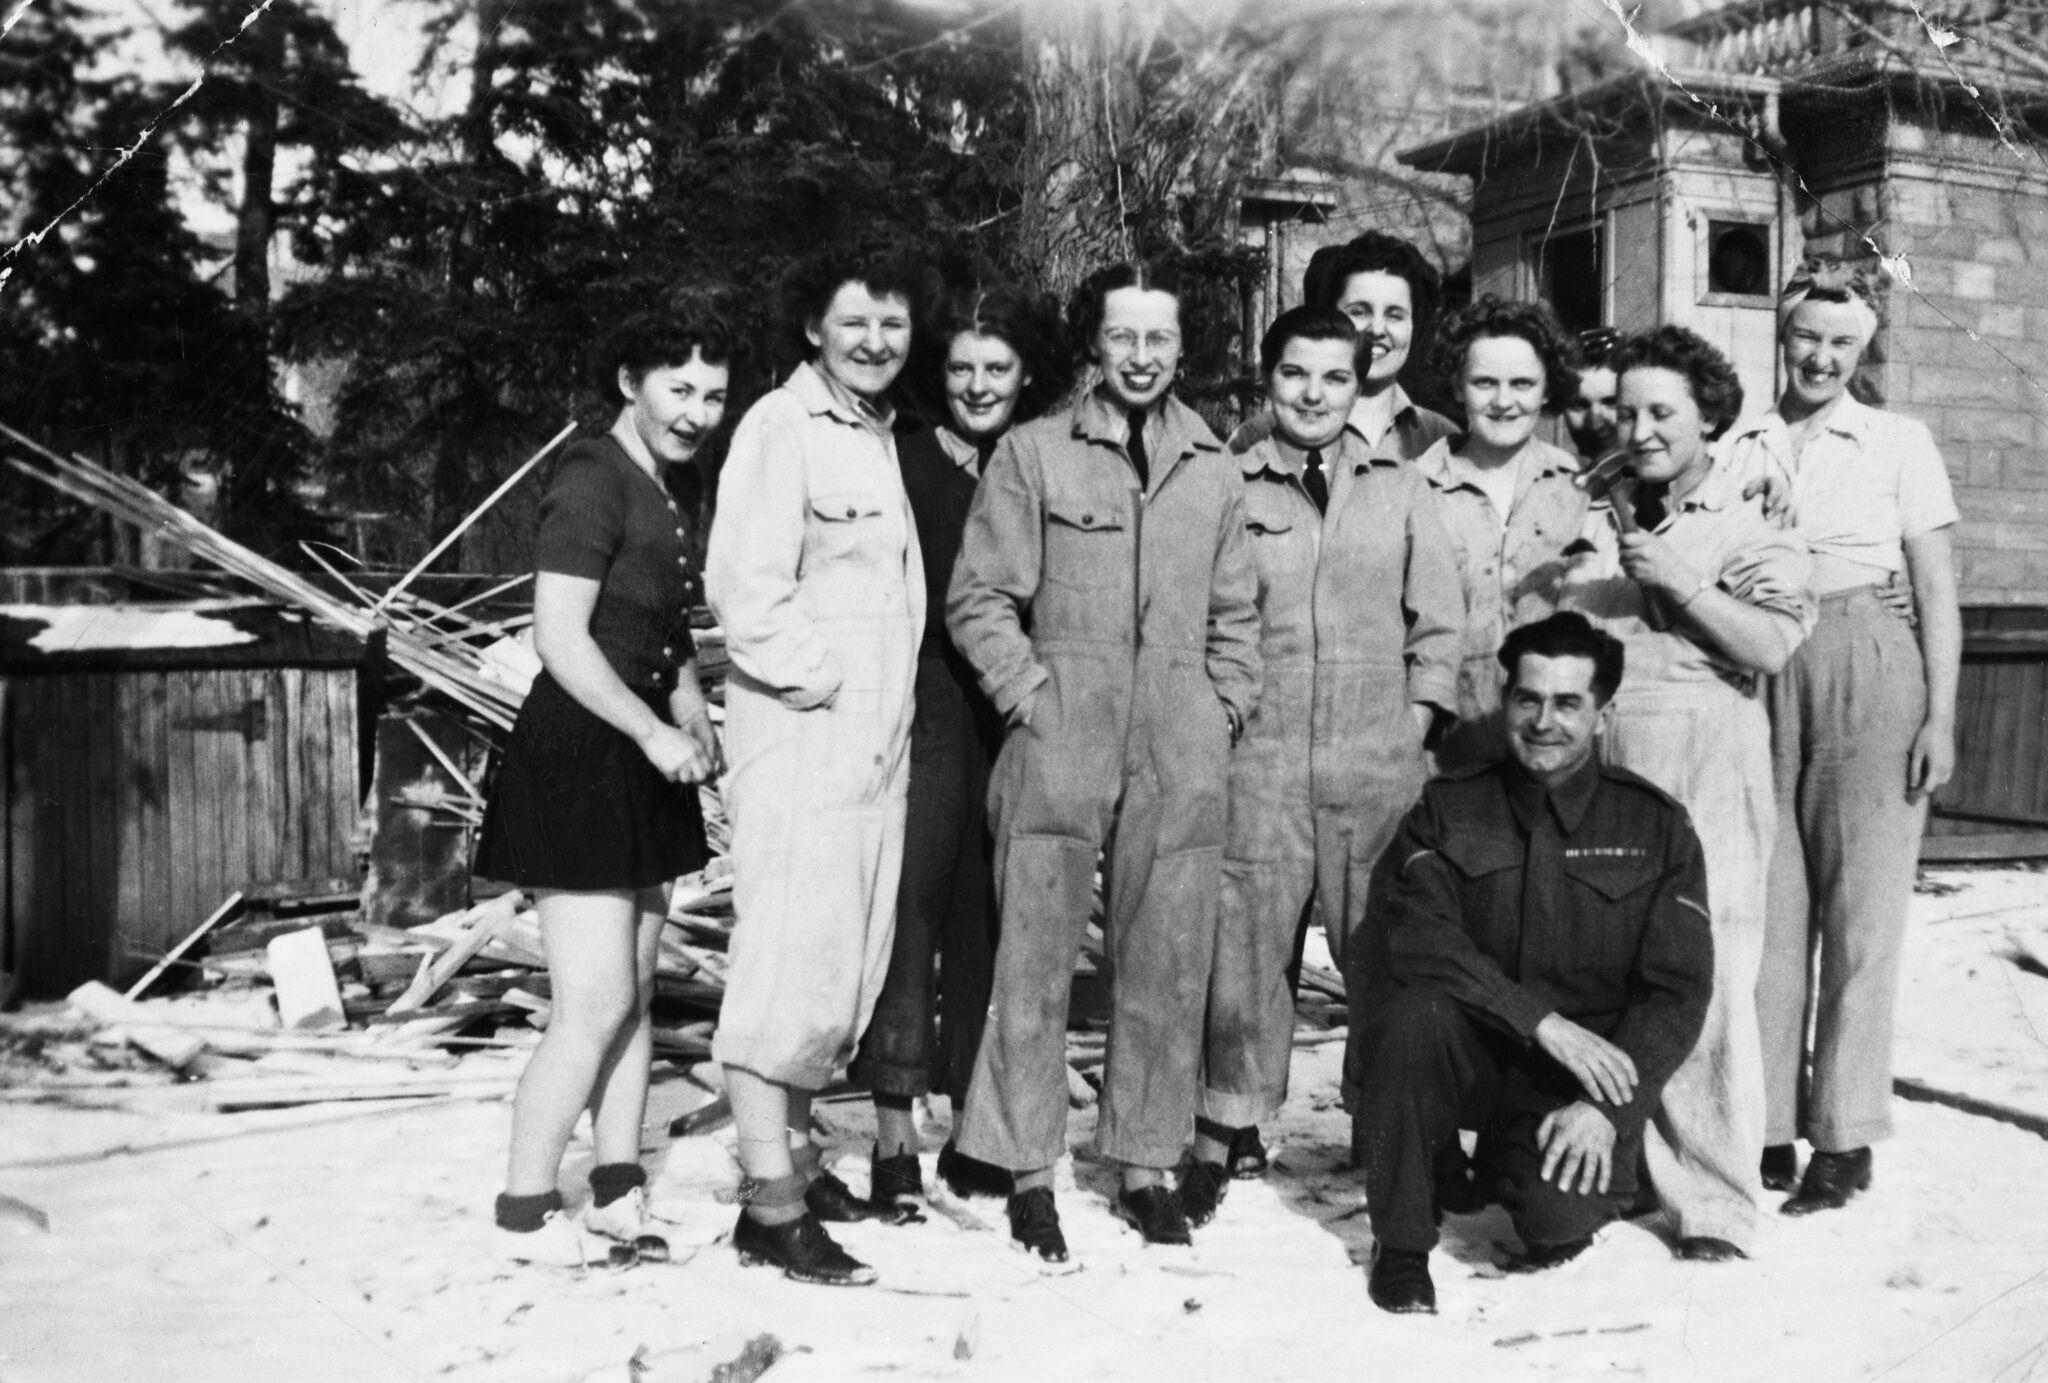 Group picture of ten women and one man in yard of sandstone building in winter. Some women are wearing coveralls. Circa 1944-46.